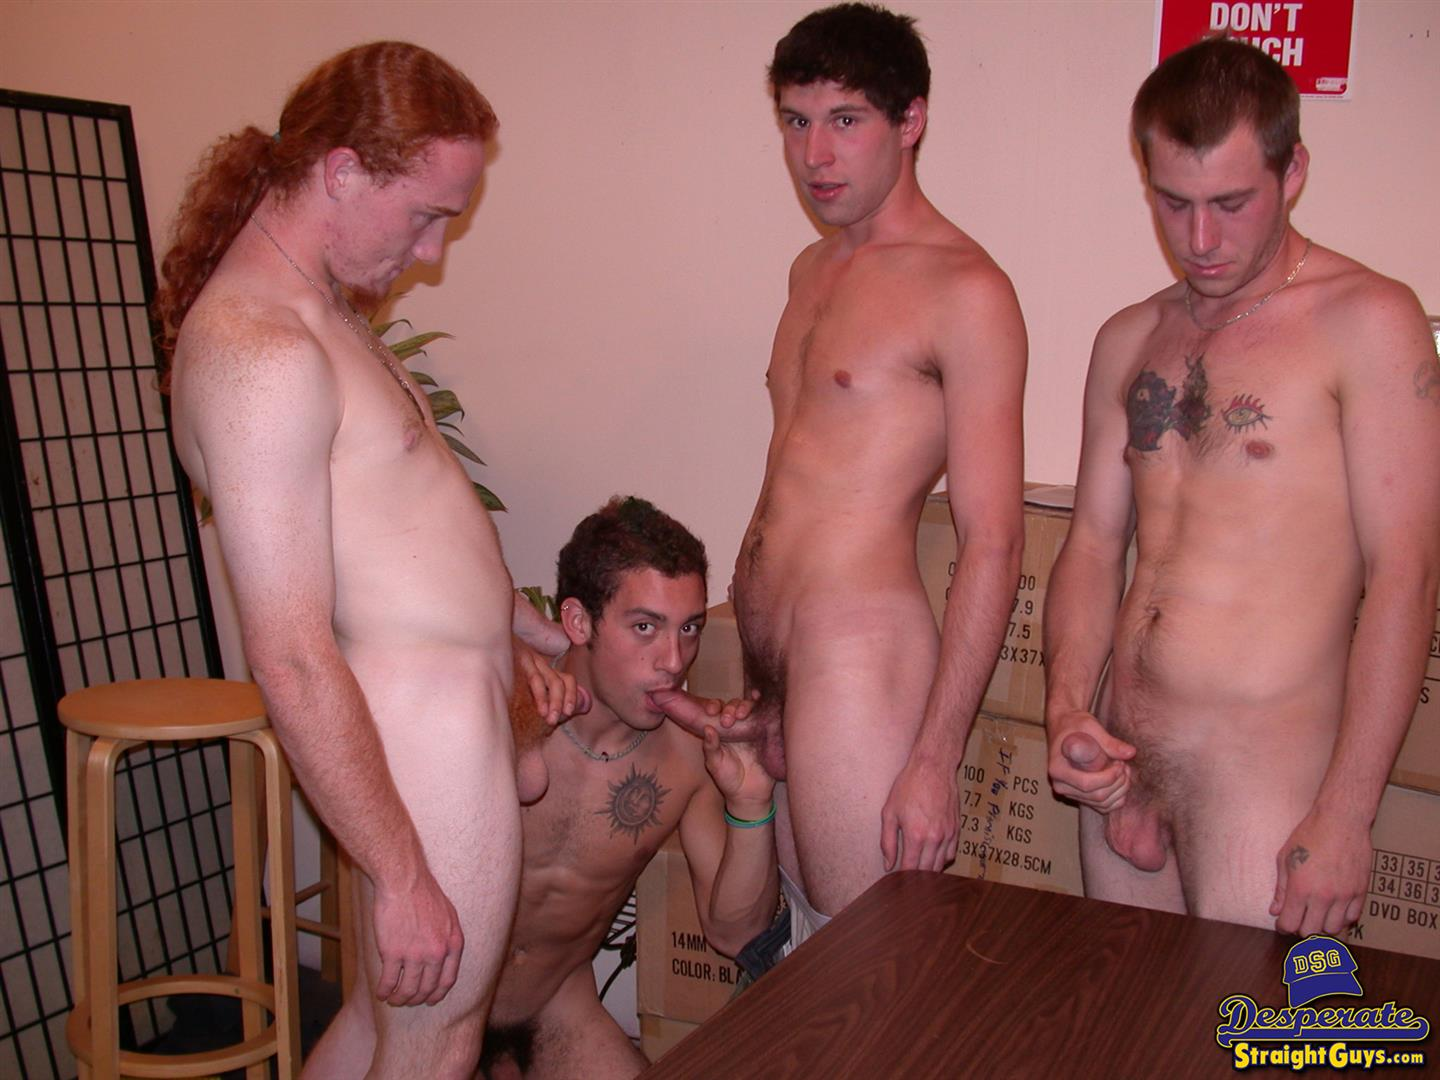 Desperate Straight Guys DJ and Aires and Ryley Nyce and Cory Woodall Flip Flop Fucking Amateur Gay Porn 03 Desperate Straight Guys Flip Flop Fucking For Cash